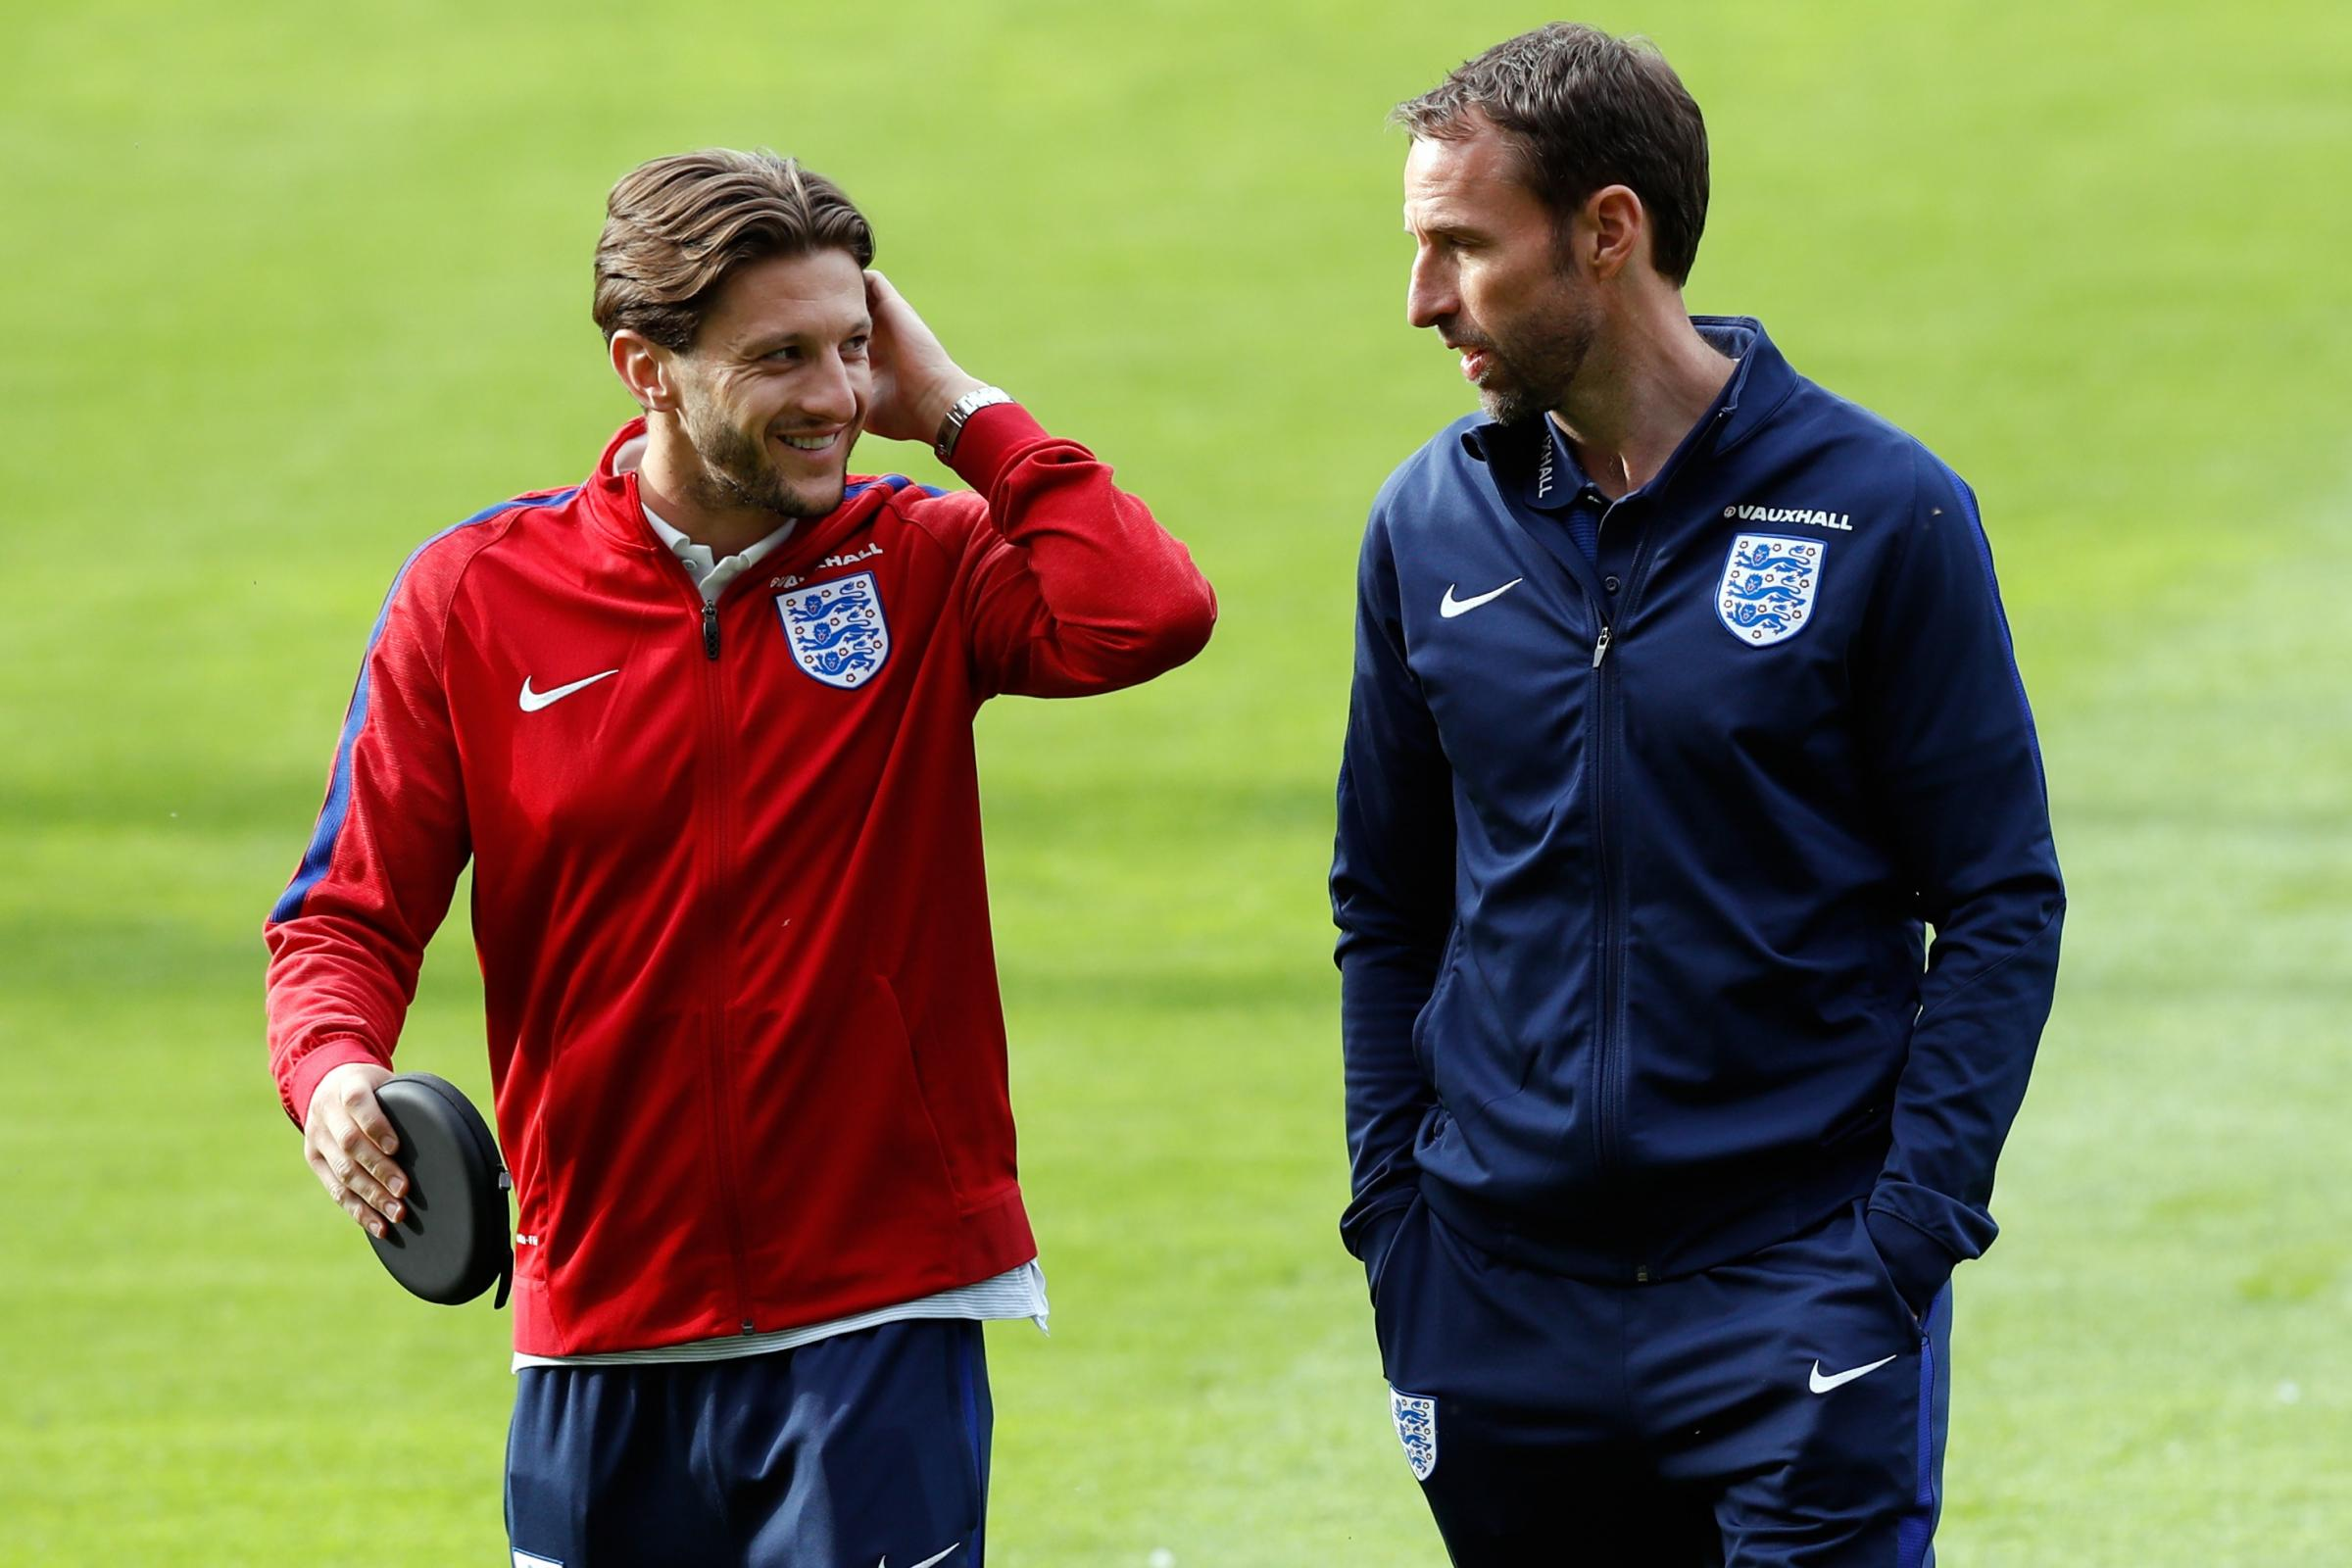 Injured Lallana and Sterling won't be able to take on Spain